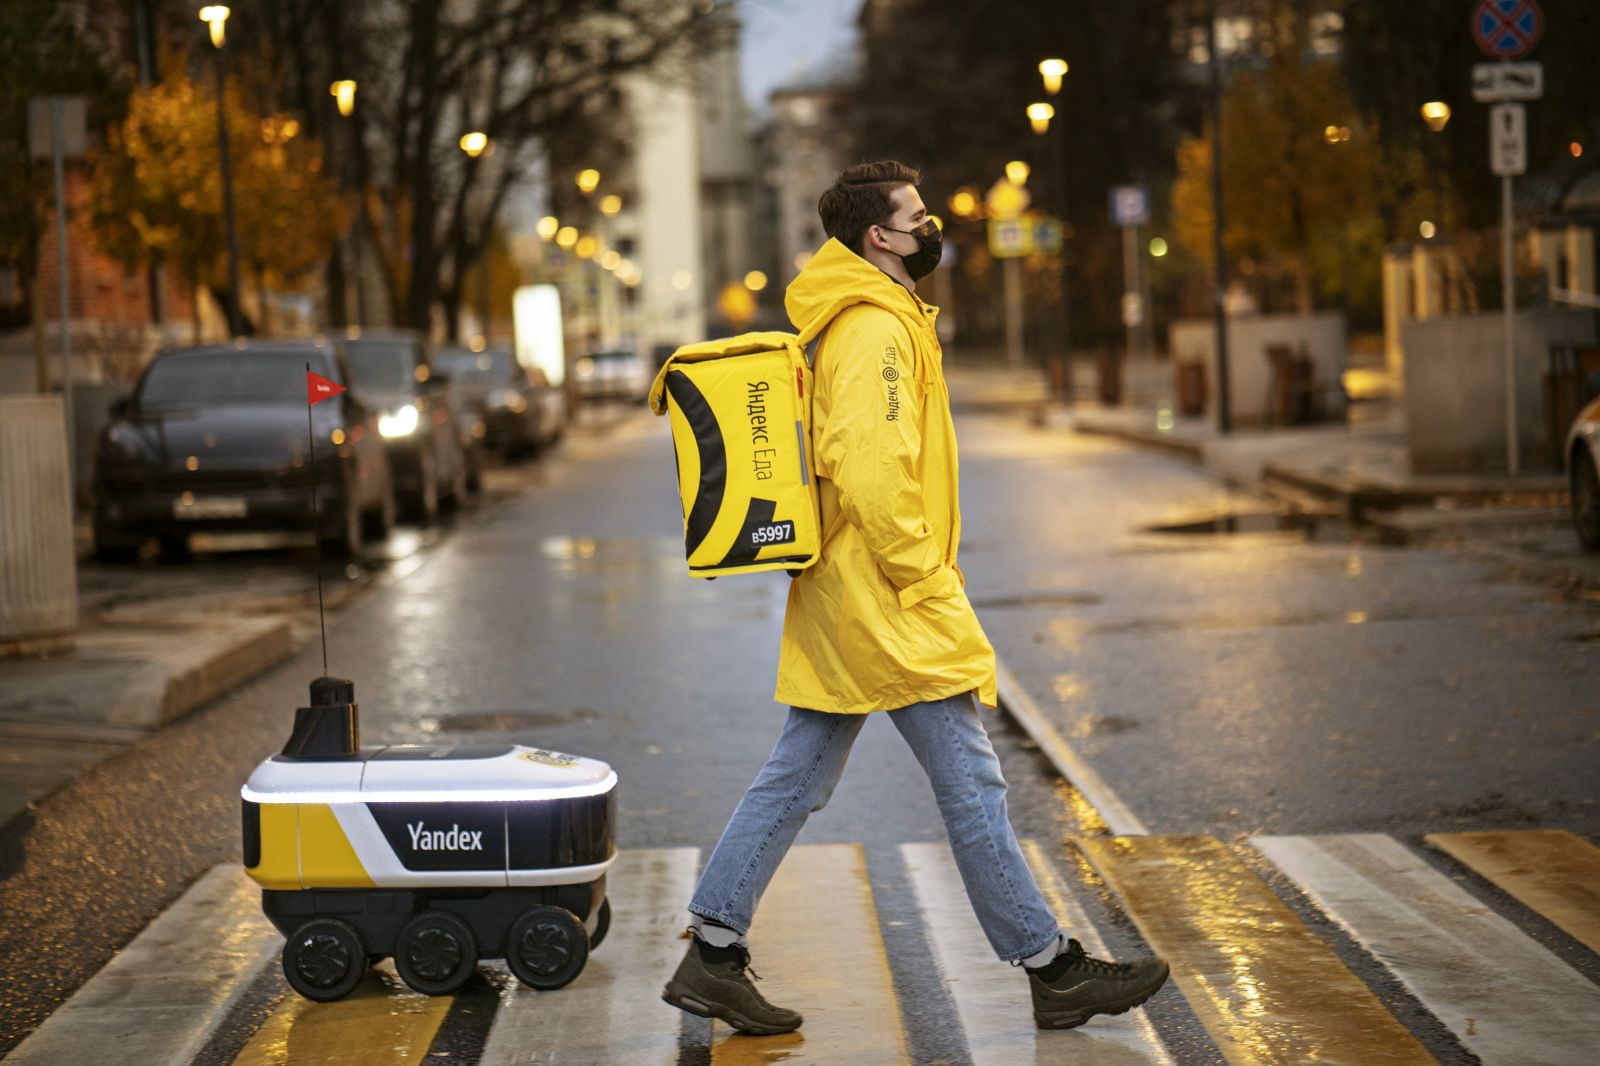 Russia's Yandex to Launch Rapid Delivery in France and London